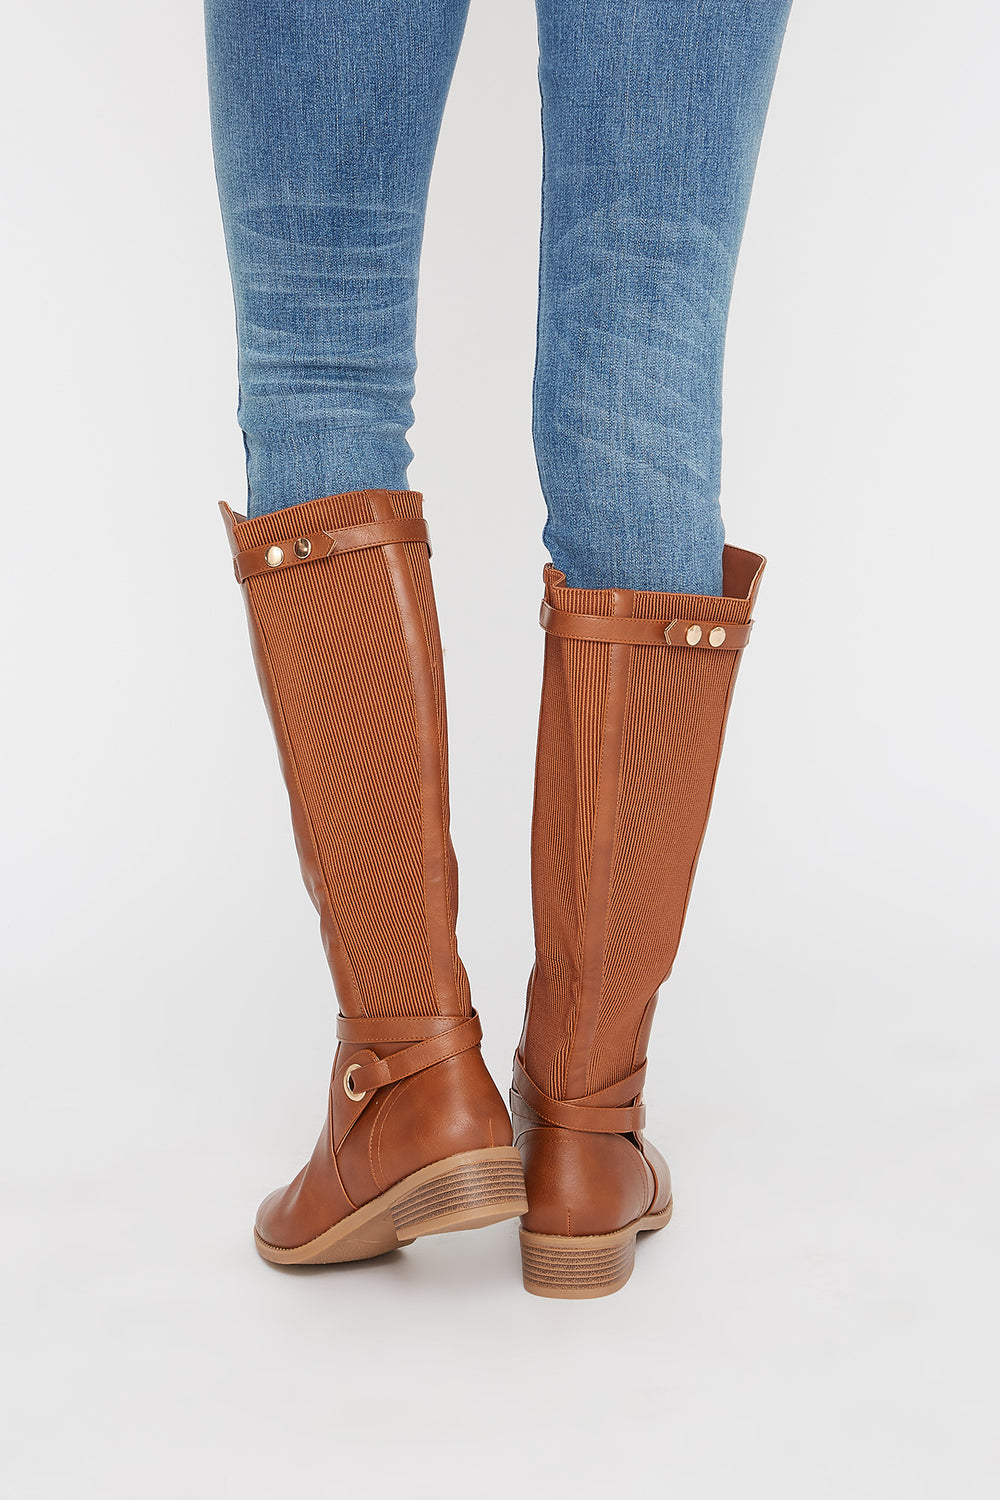 Gore Faux-Leather Knee High Boot Camel